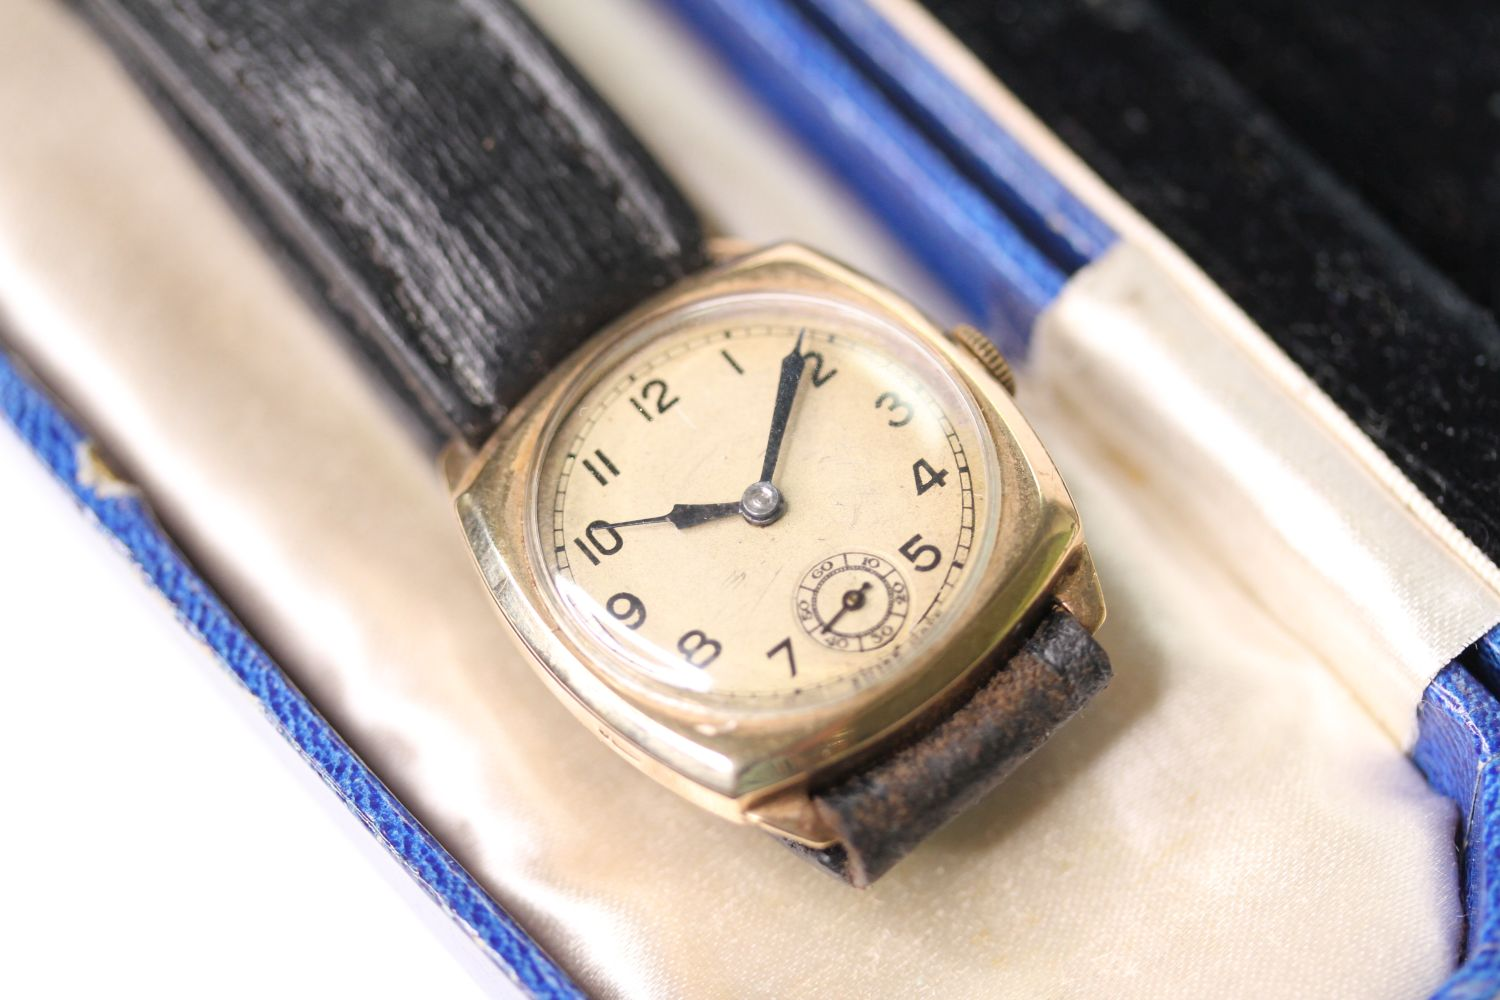 9CT GOLD TRENCH WRISTWATCH, circular silver dial with arabic numbers, small seconds at 6 0'clock, - Image 2 of 5